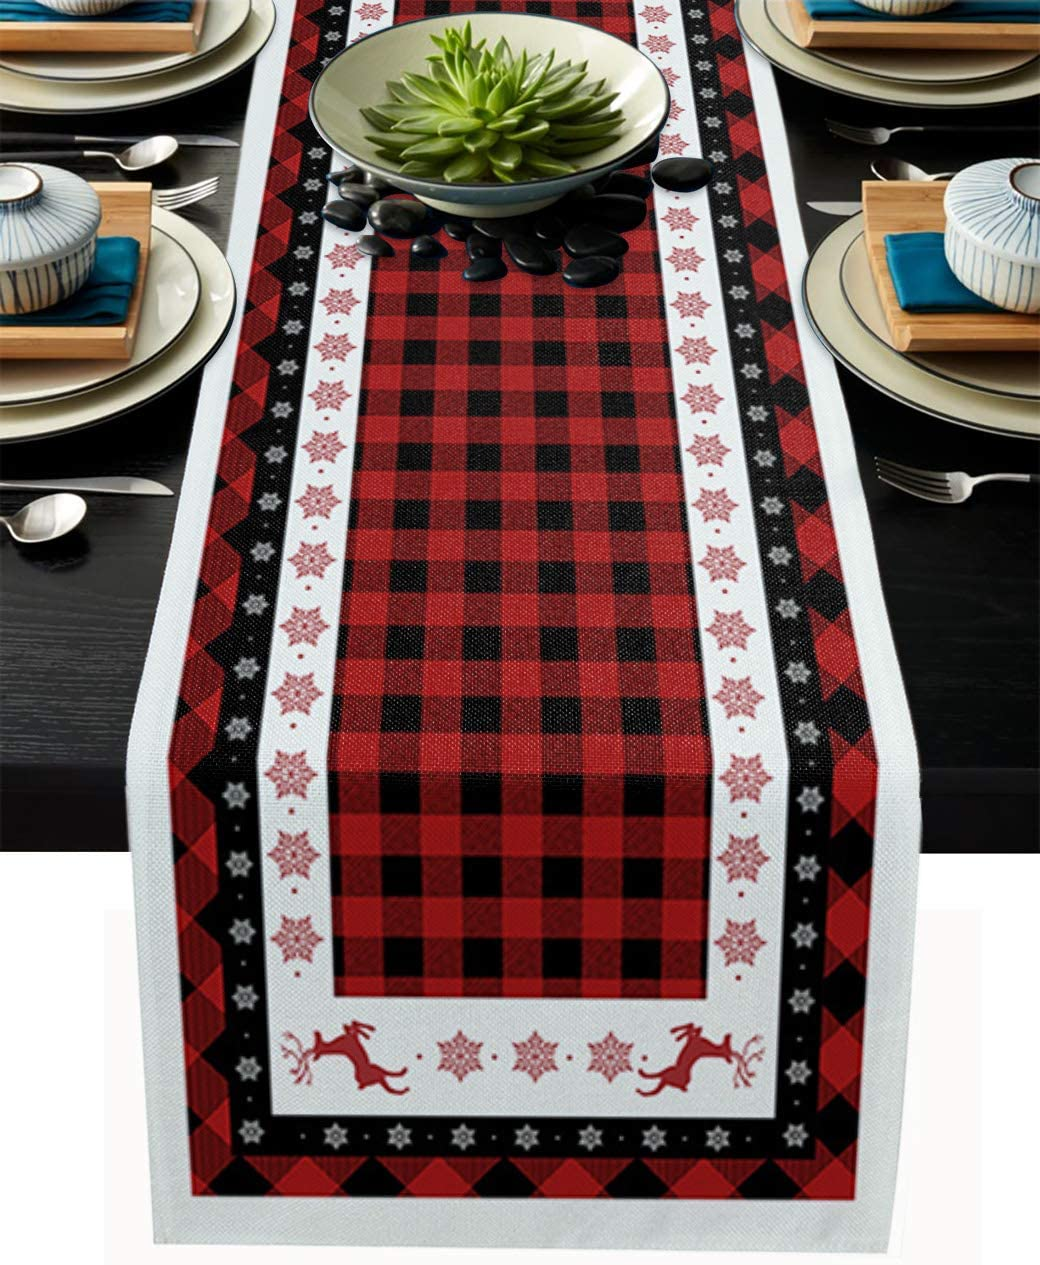 Libaoge Coffee Table Runner Christmas Red Black Buffalo Plaid Burlap Table Runner for Home Décor Crafts for Family Dinner, Parties, Thanksgiving, Christmas & Gathering 13x108inch